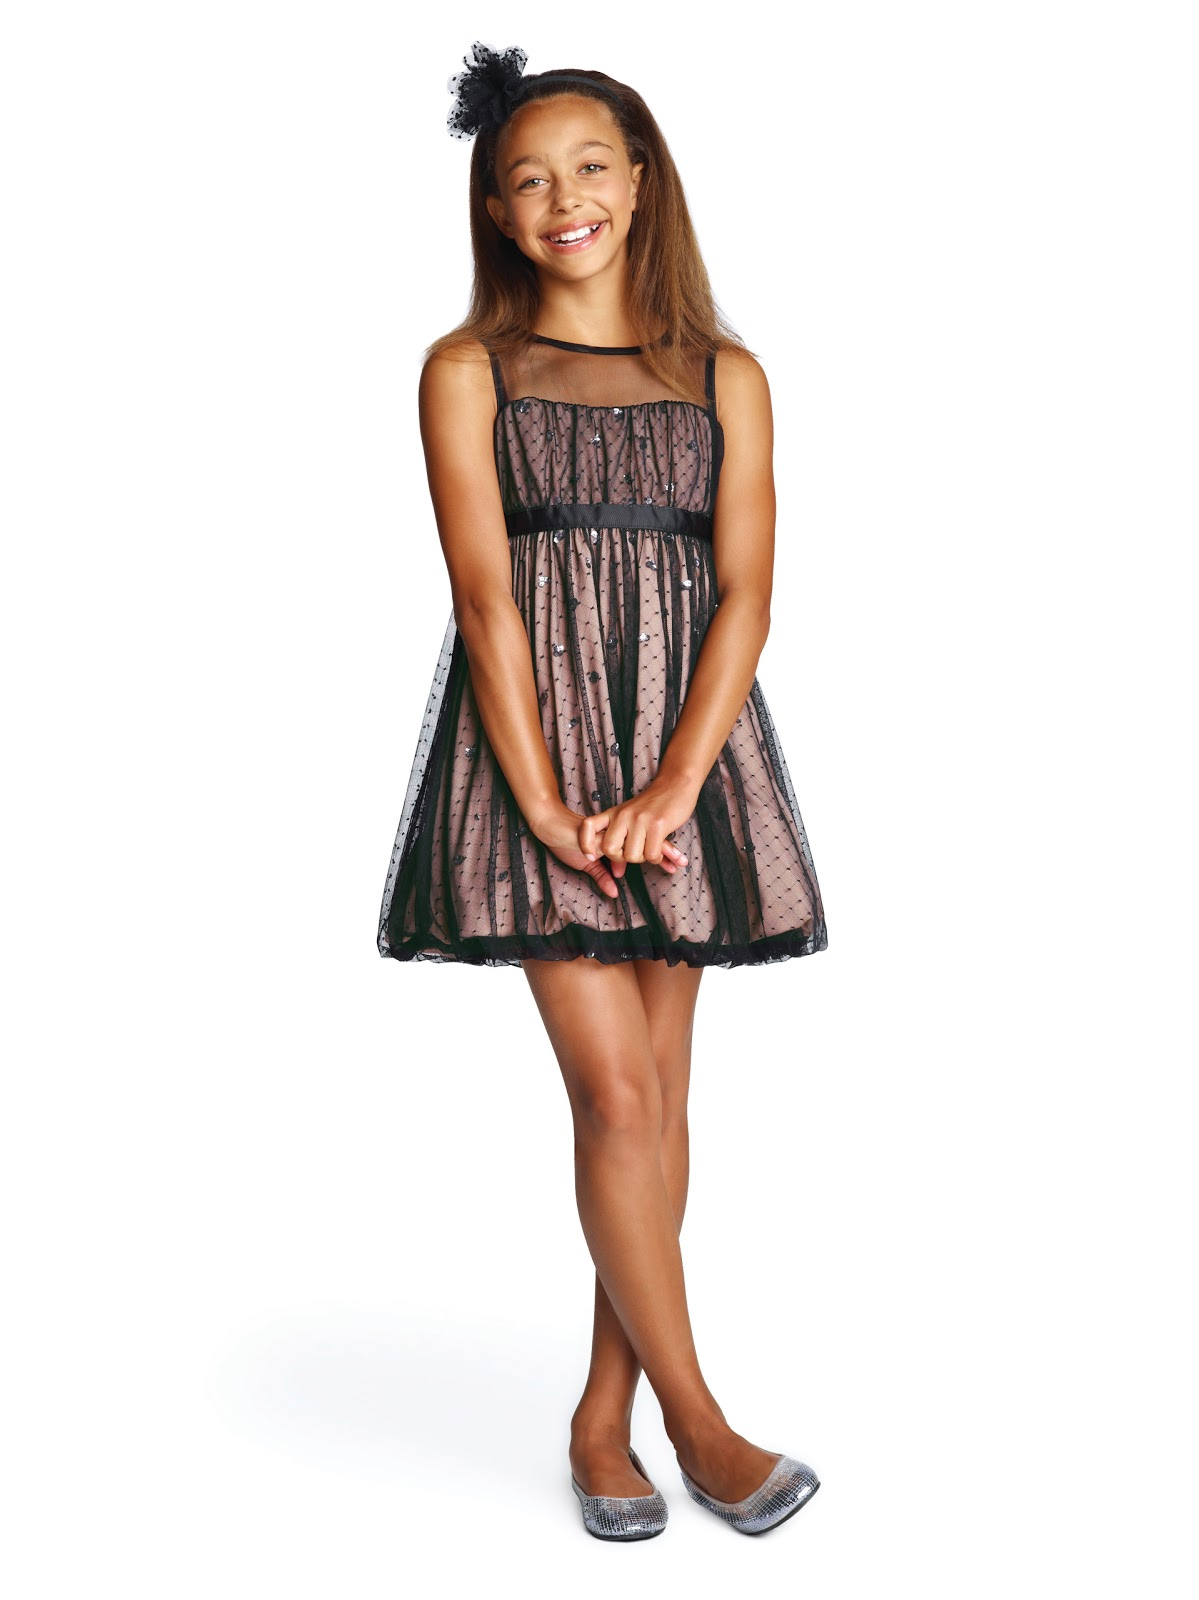 Teen clothing for girls in